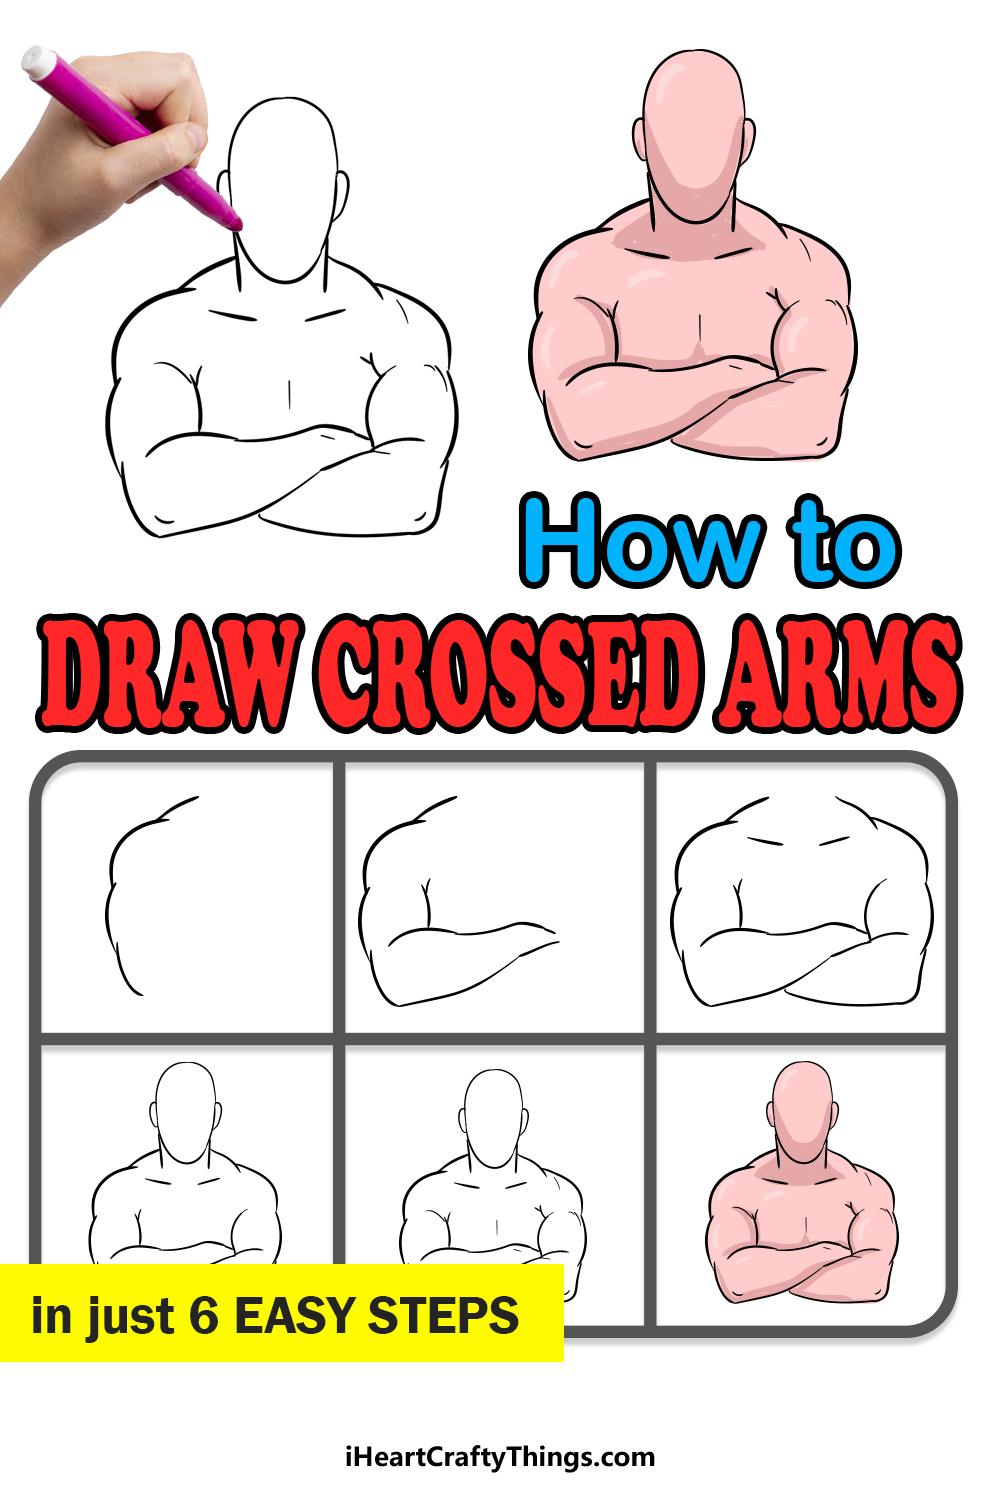 how to draw crossed arms in 6 easy steps